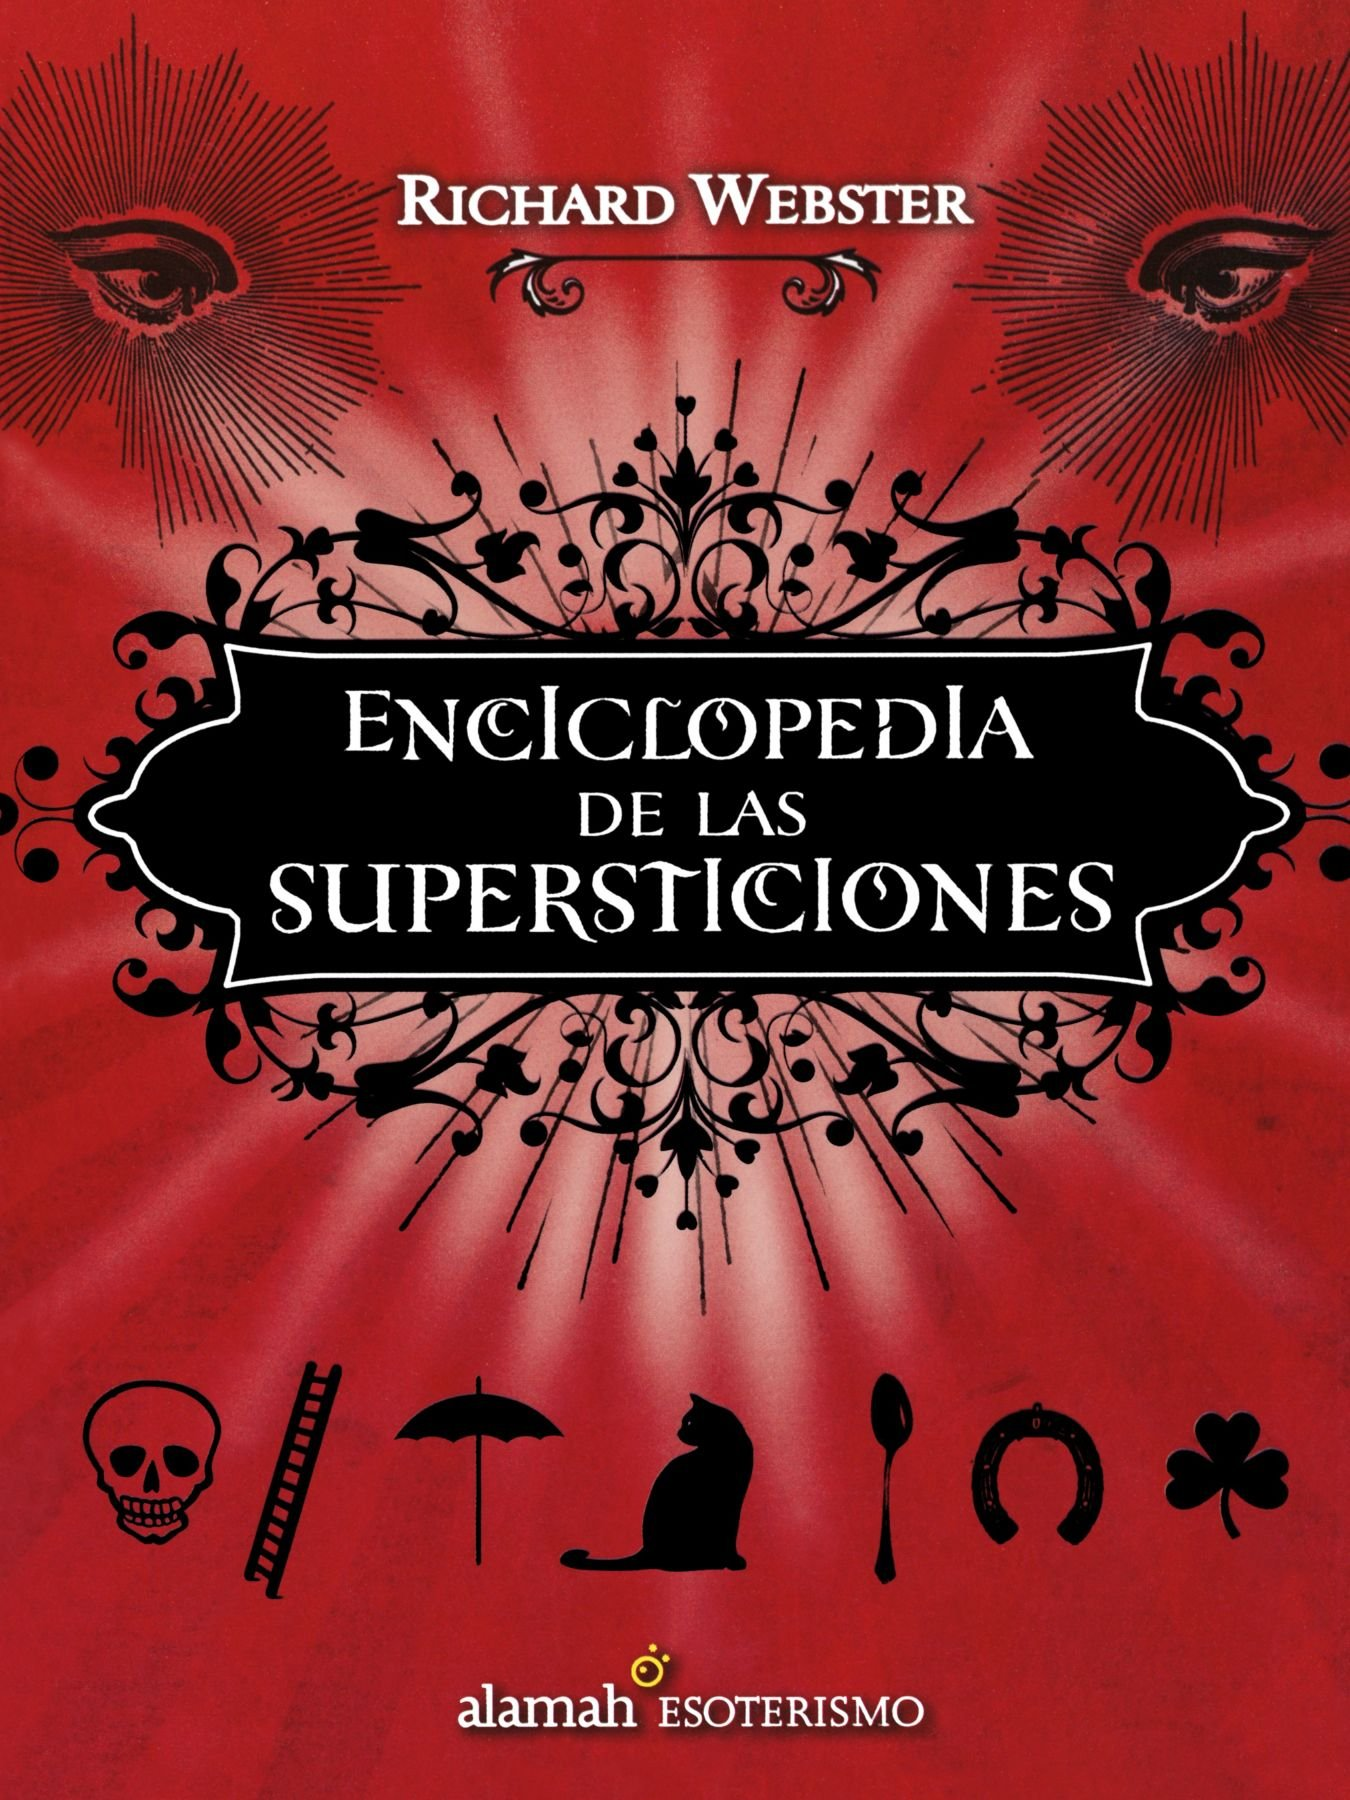 Enciclopedia de las supersticiones / The Encyclopedia of Superstitions (Spanish Edition) (Spanish) Paperback – April 30, 2009